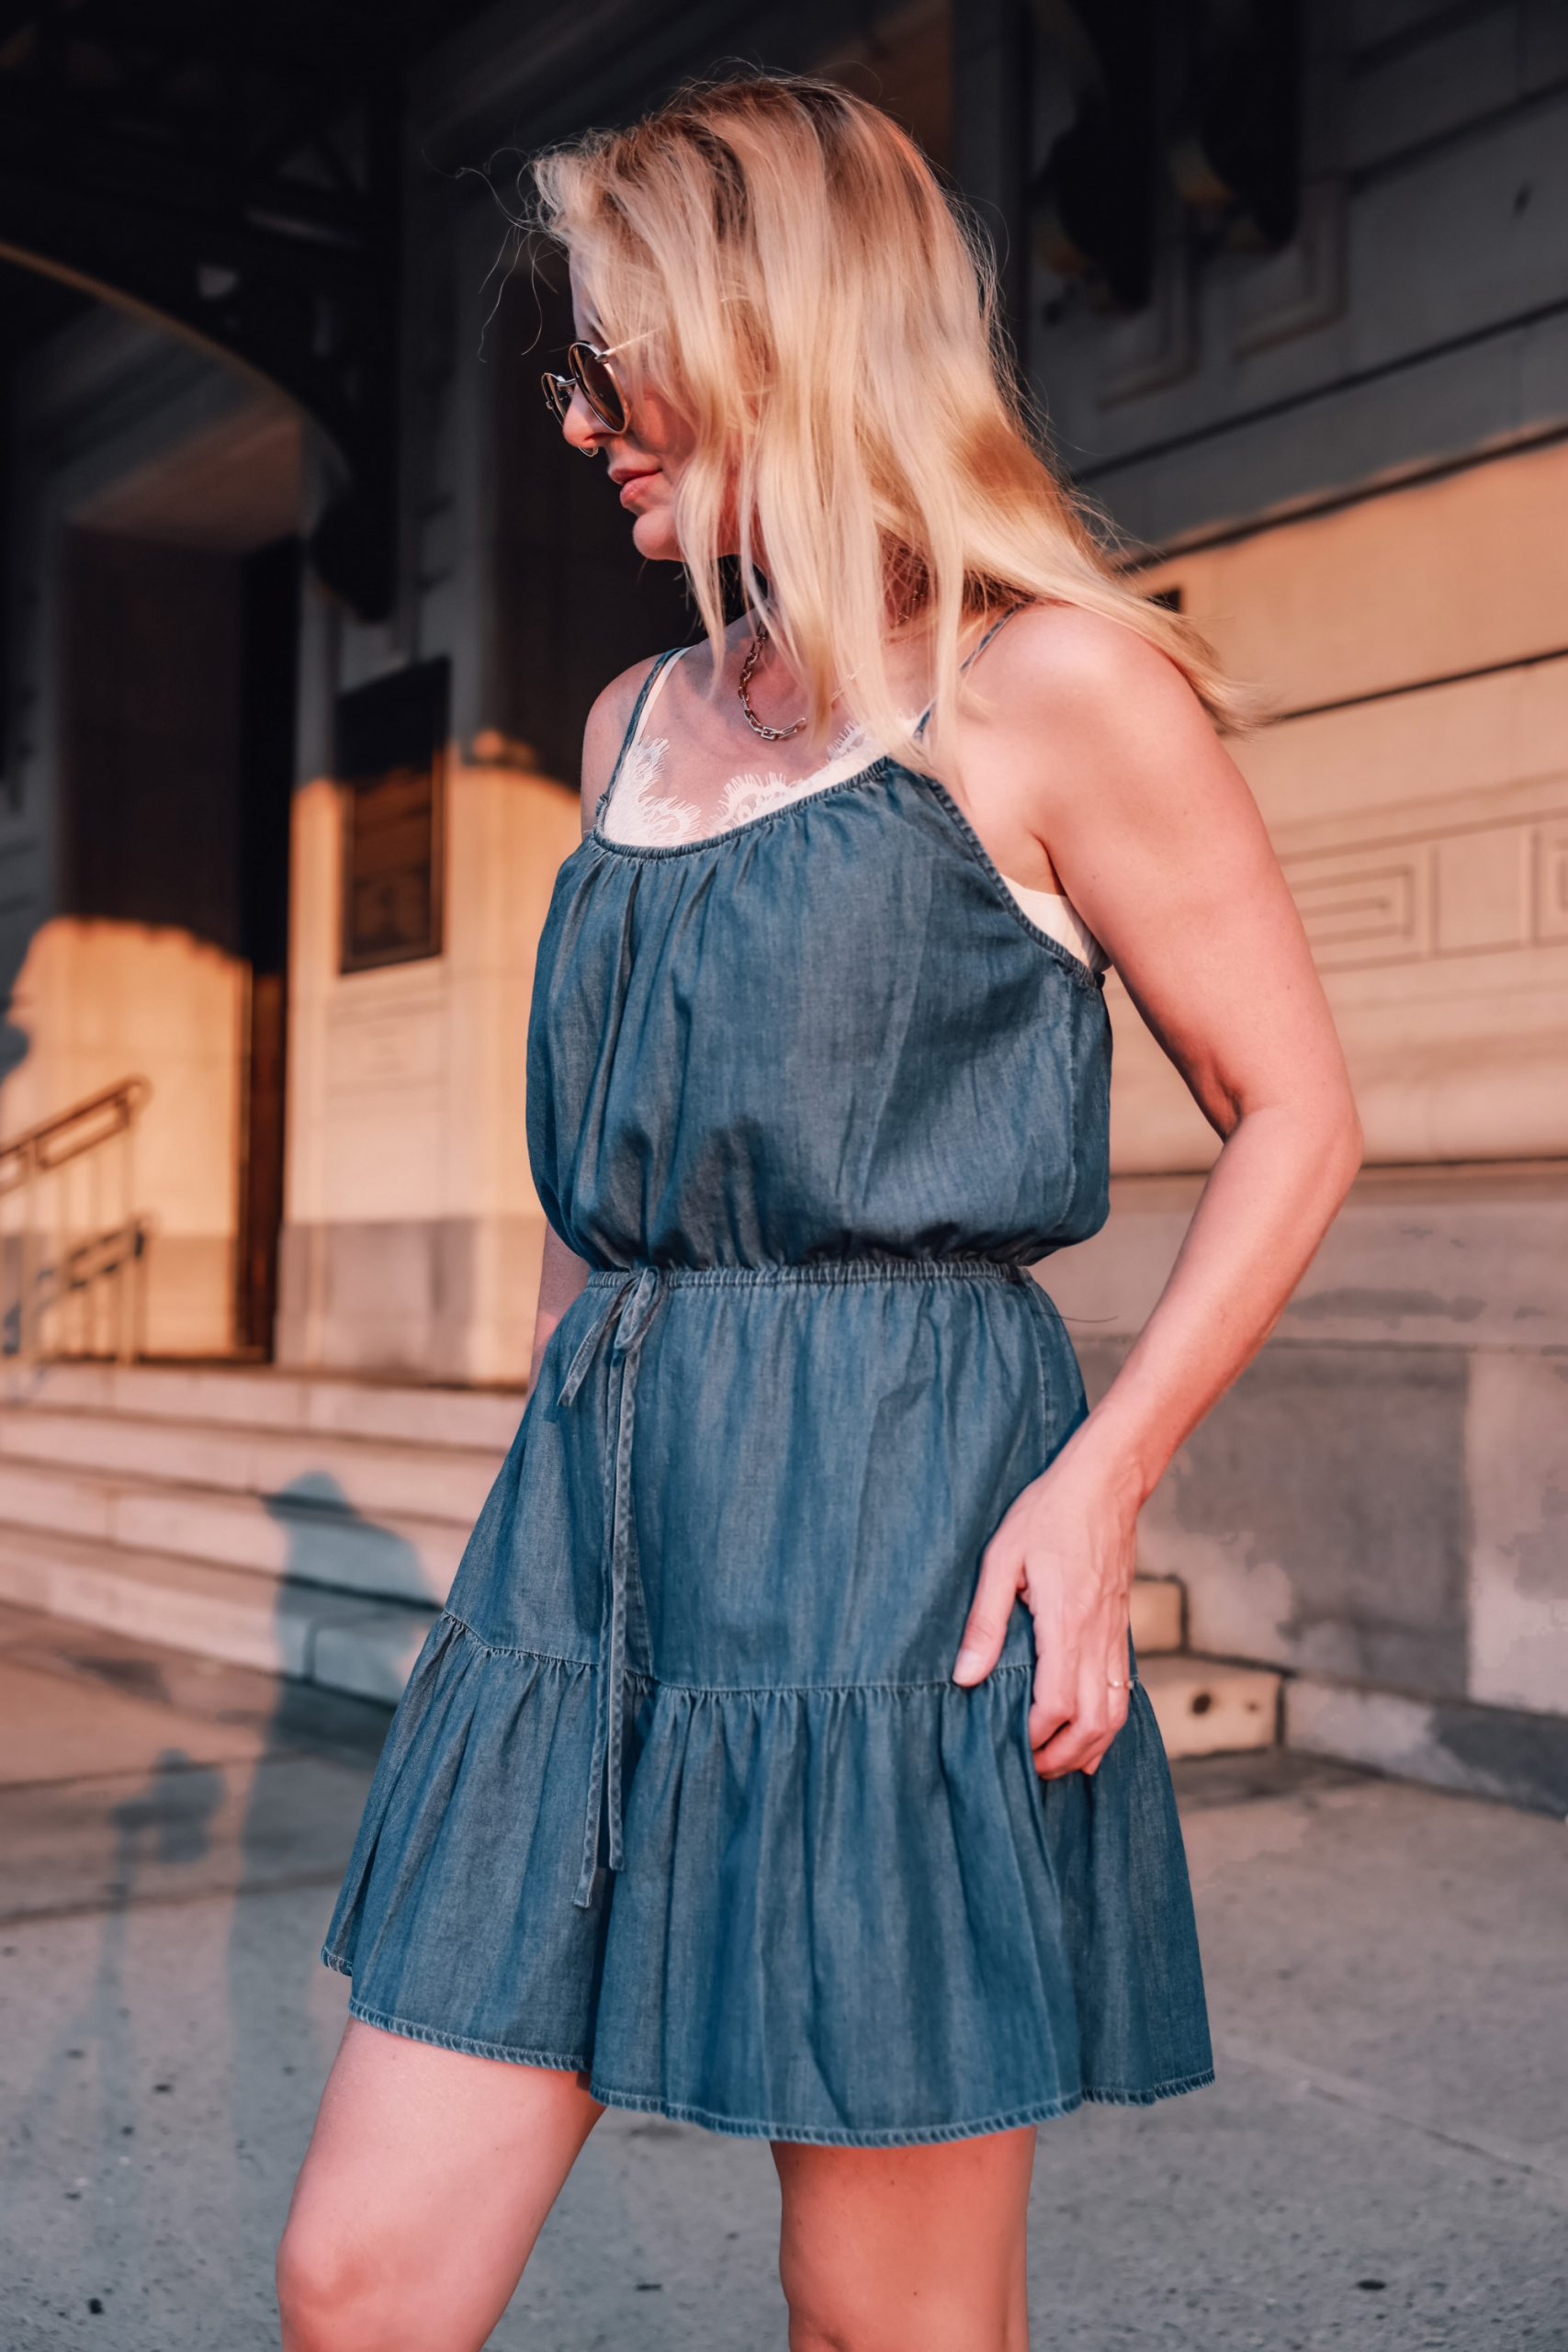 how to wear a romper, how to wear rompers, rompers over 40, three ways to wear a romper, express ruffled romper, see by chloe wedges, express paperclip necklace, express jewelry, express sunglasses, affordable romper